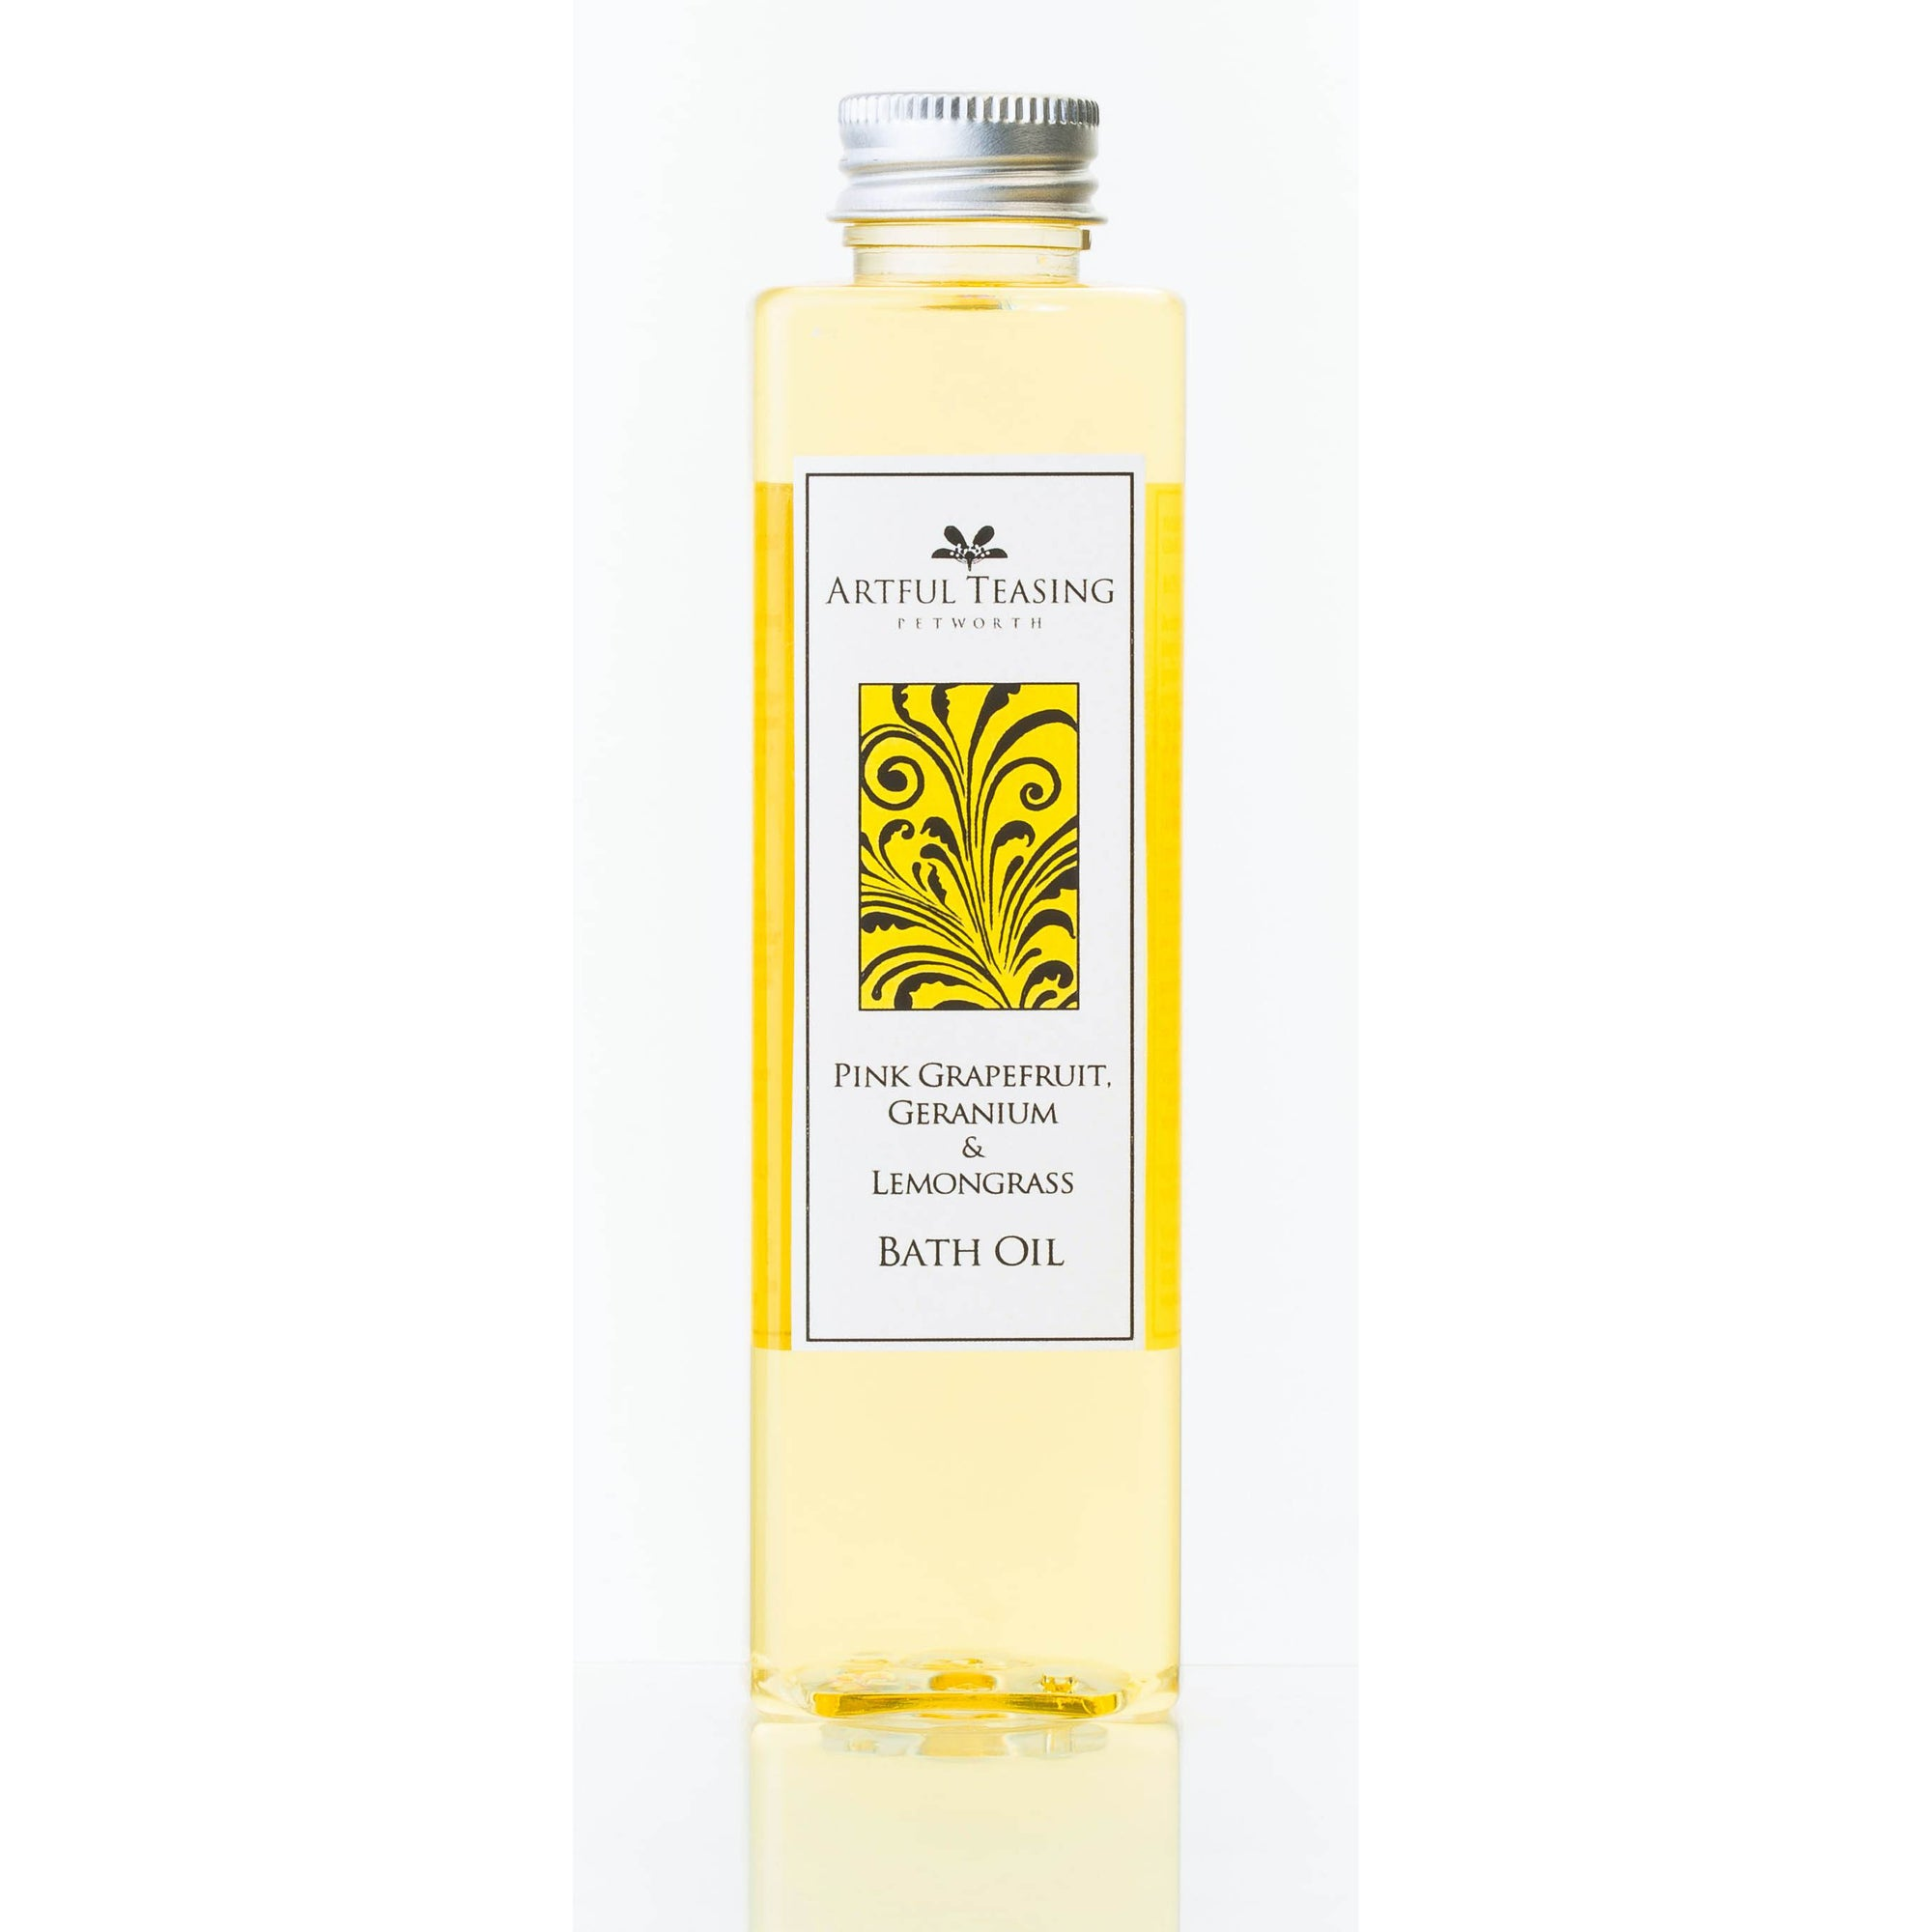 Pink Grapefruit, Geranium & Lemongrass Bath Oil 200ml